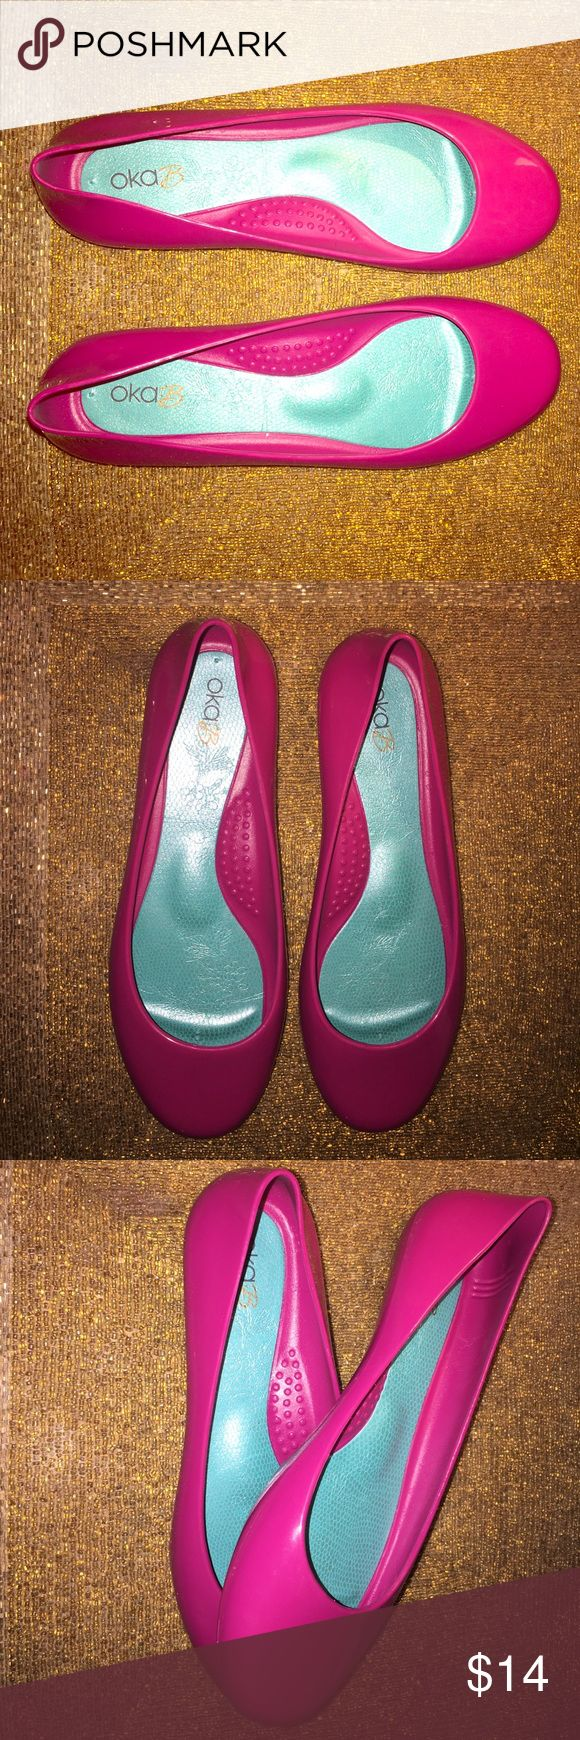 OKA B JELLY BALLET FLATS SIZE 6 NEW 💕 HOT PINK 💕 Ok, I am IN LOVE! 💕💕💕 This color is GORGEOUS 💕💕💕 A bright pink with purple undertone 💕💕💕 BRAND NEW SIZE 6 COMFORT ALL DAY LONG 💕💕💕 OKA b. Shoes Flats & Loafers